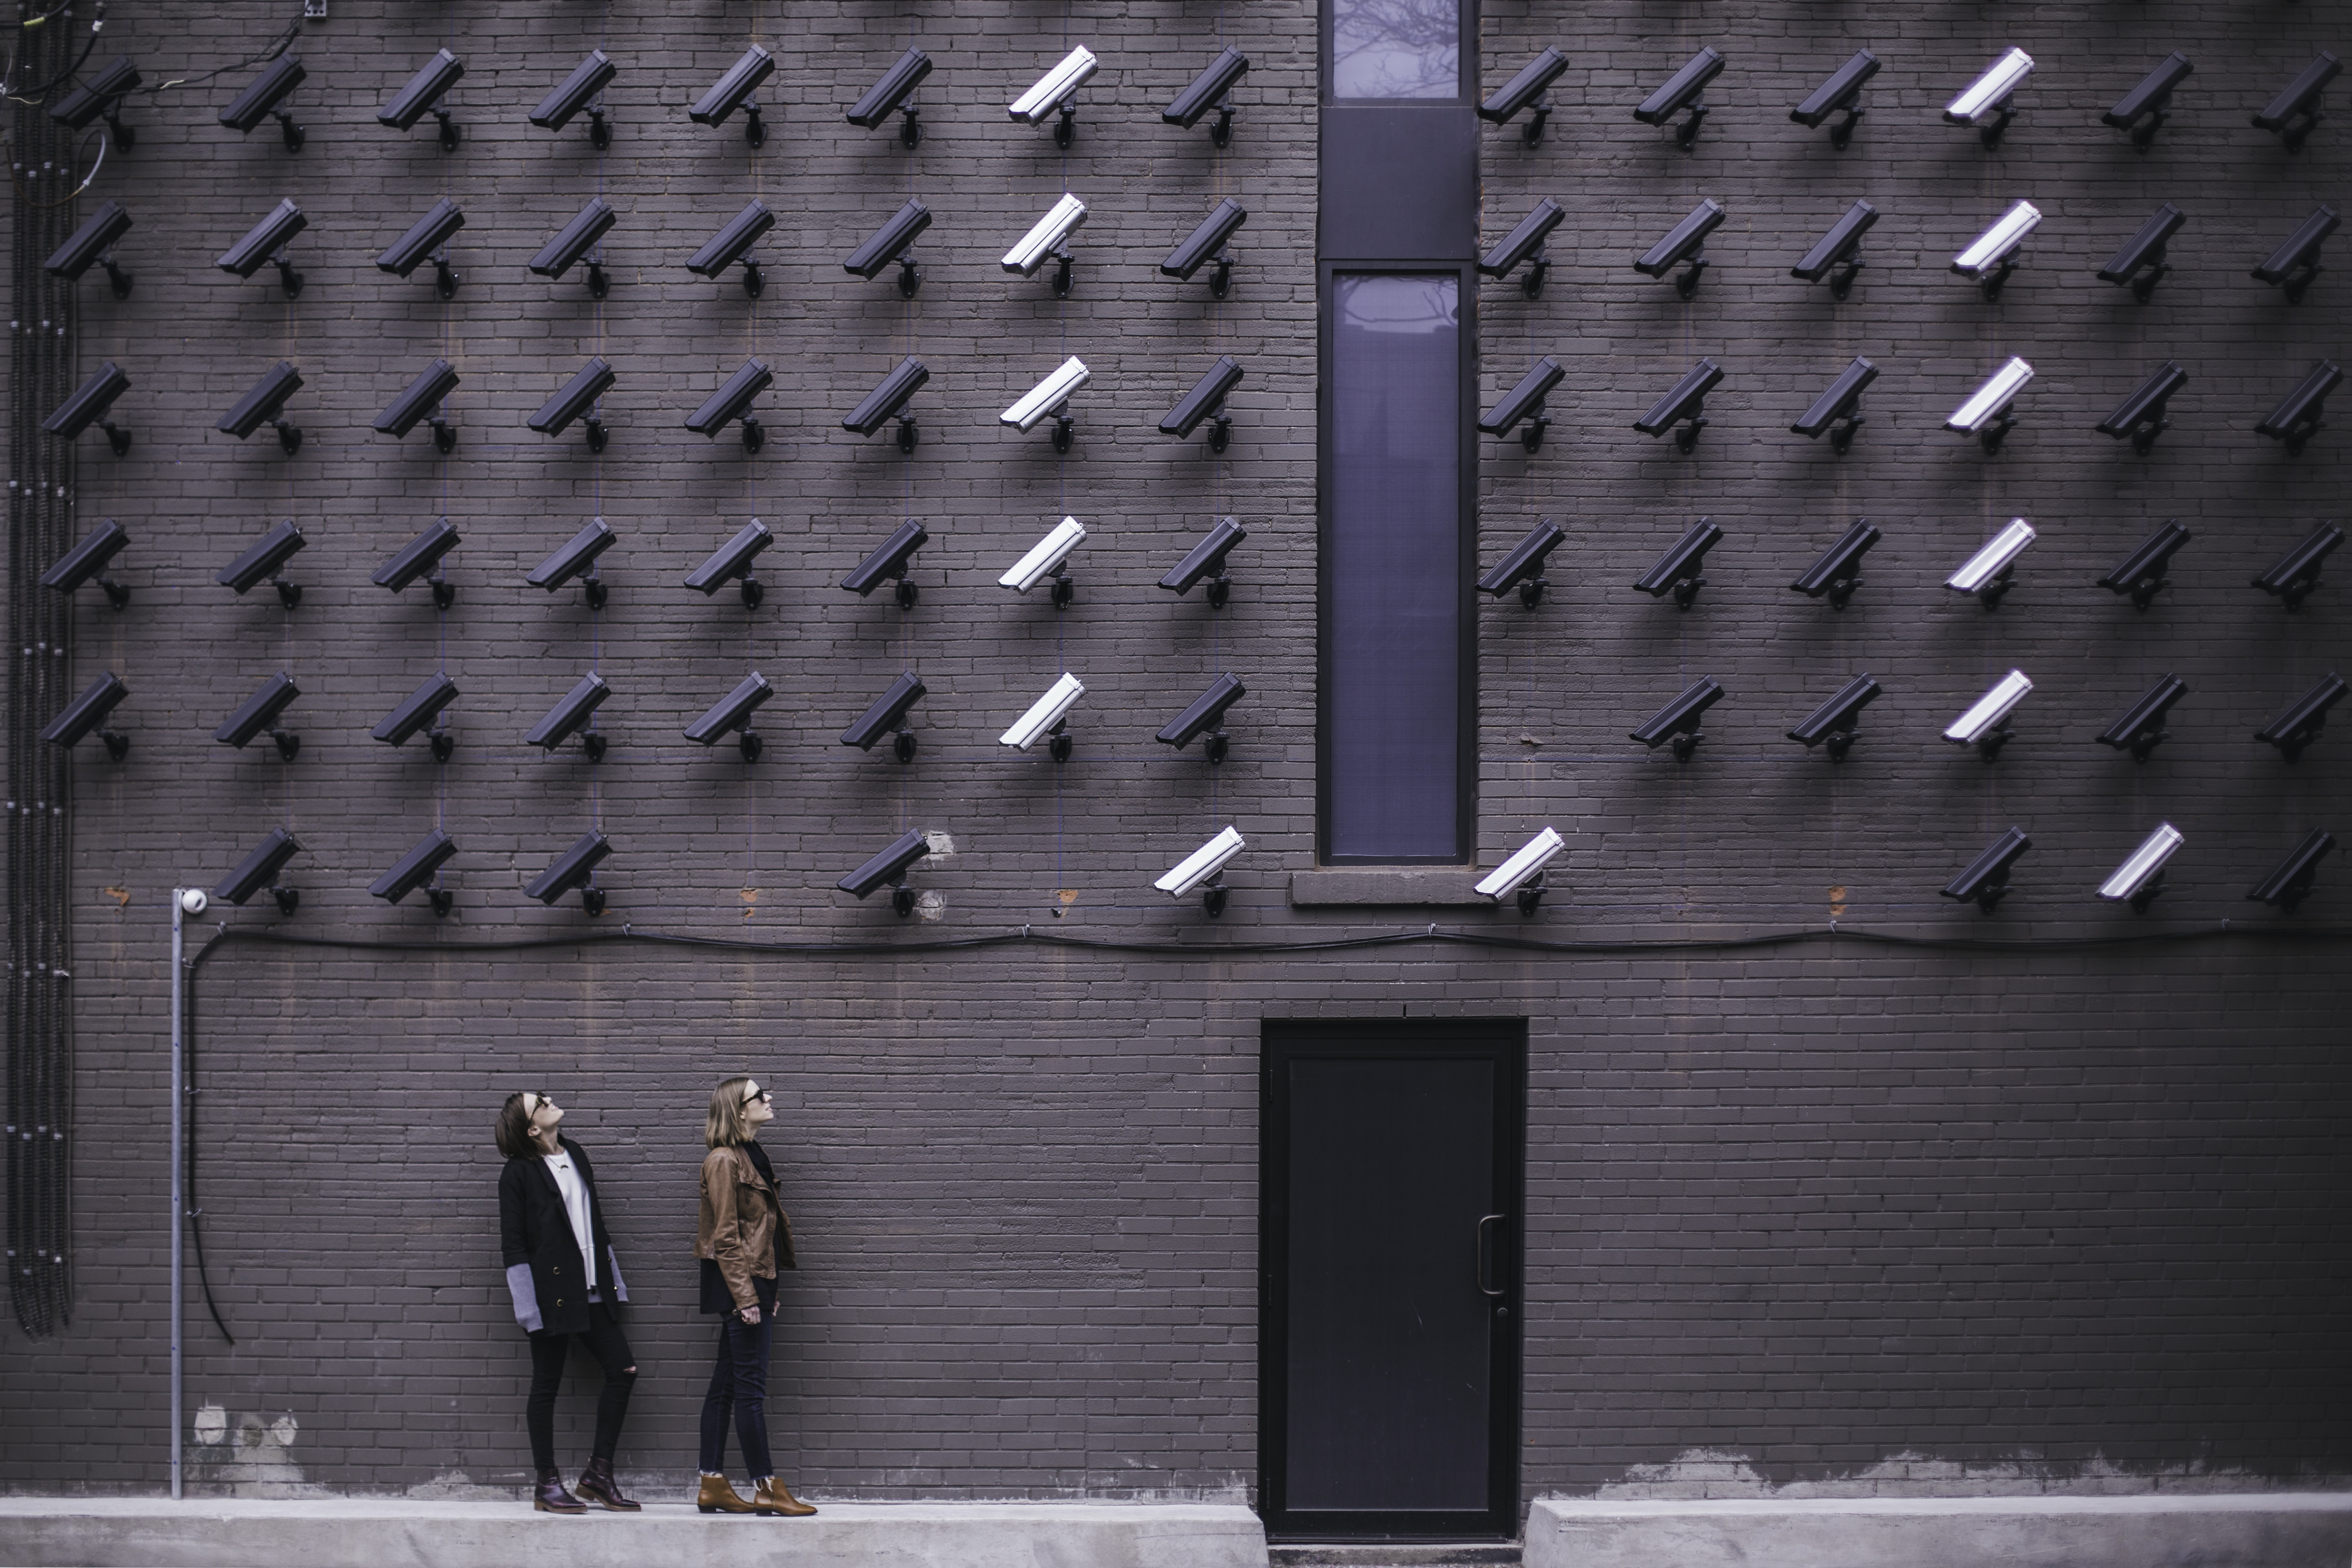 Women viewing modern art with black and white surveillance cameras on wall in Toronto